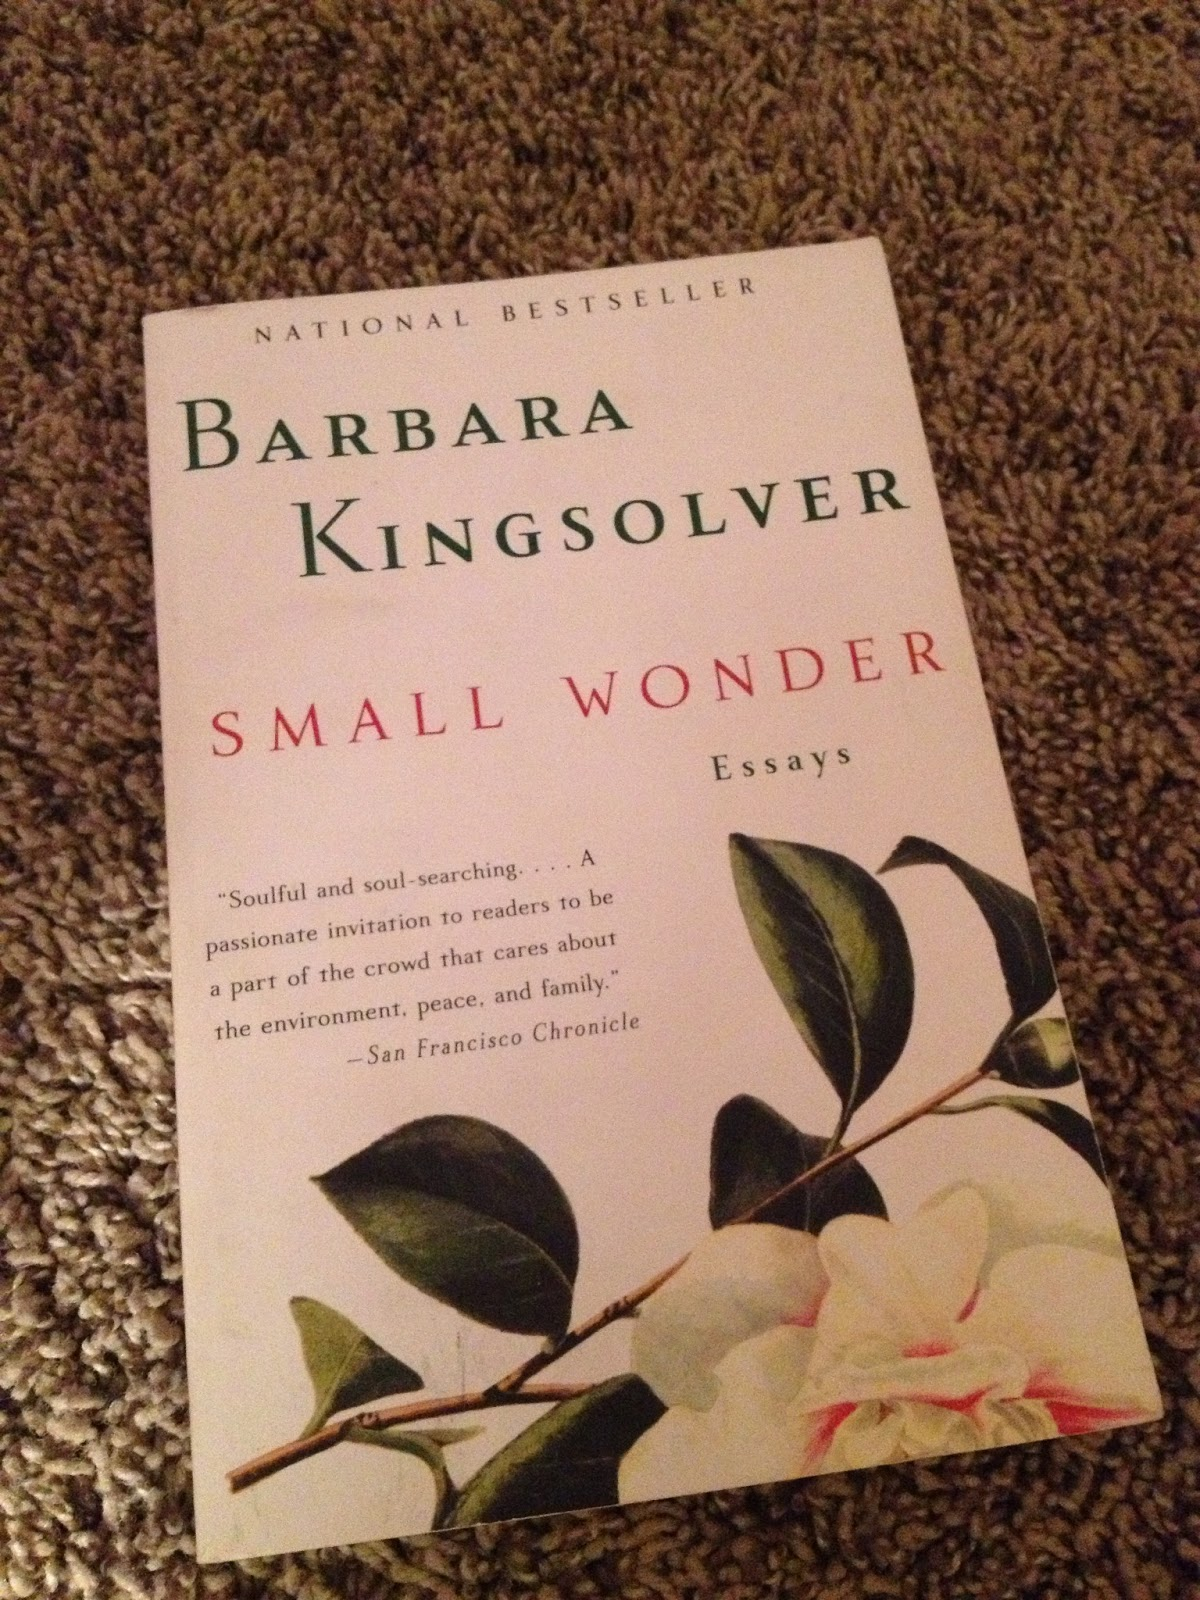 wethree  here s another barbara kingsolver book to add to your list these essays will help you start to notice the little miracles that happen around us each and